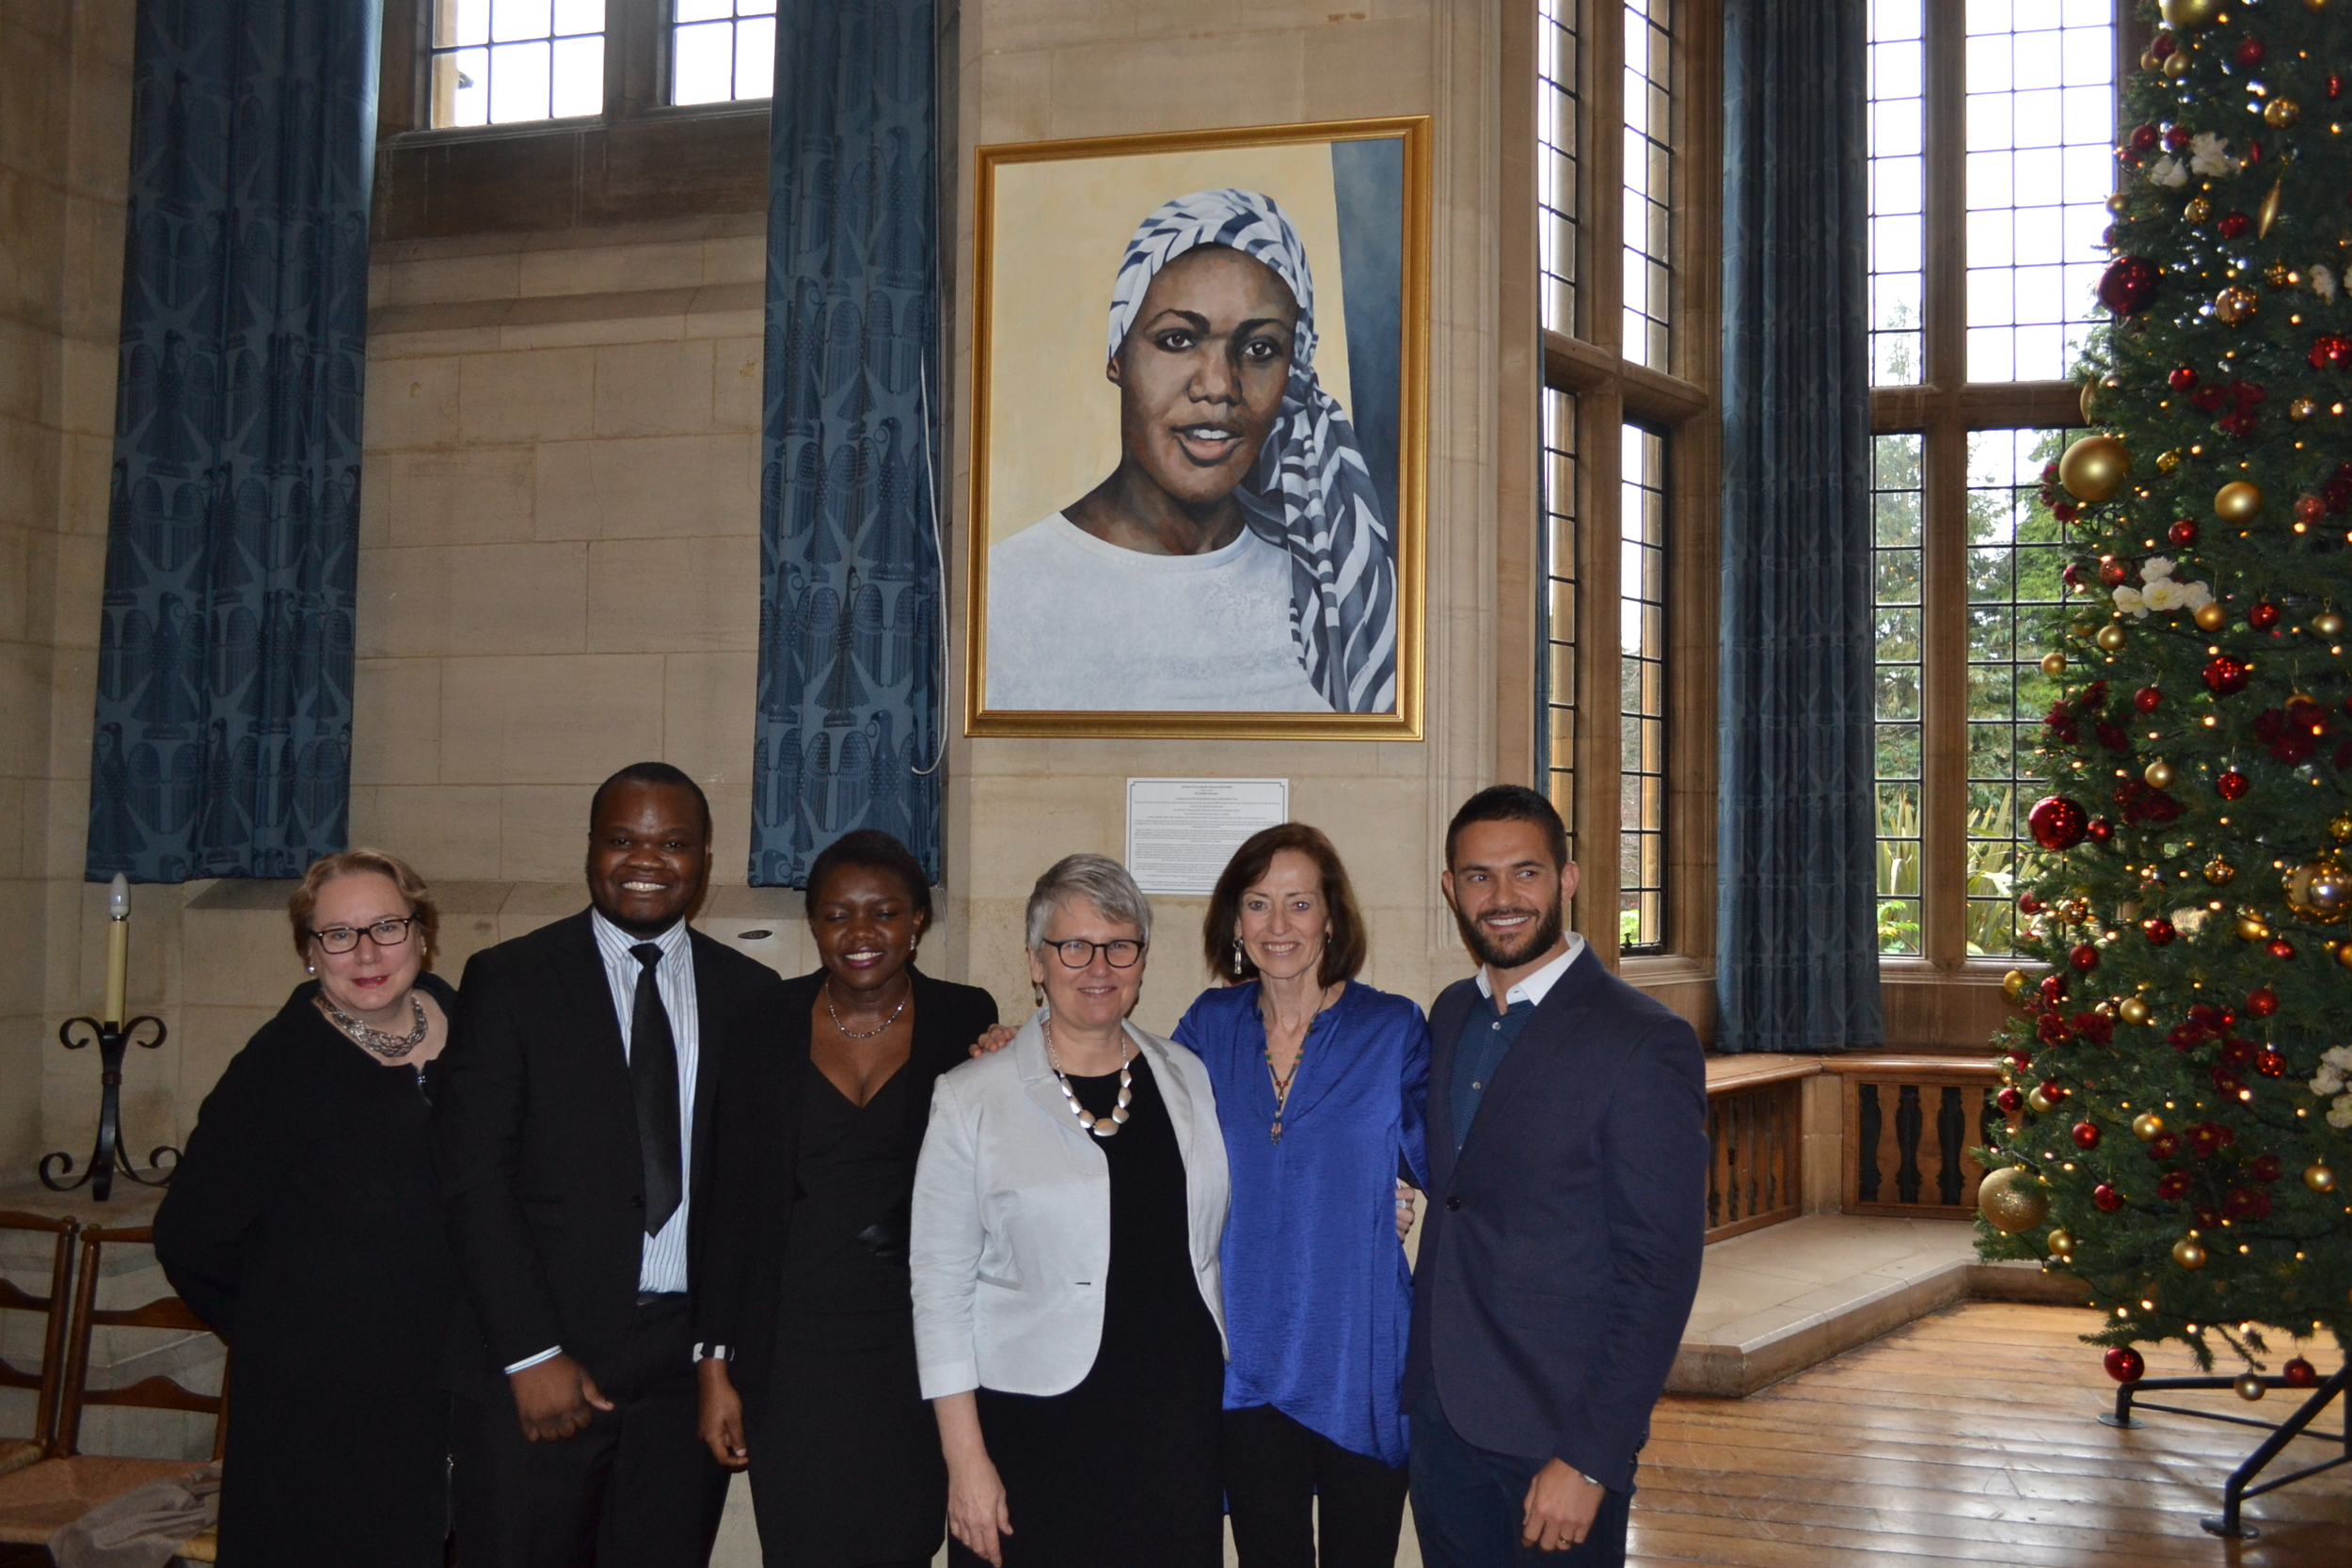 Left to right: Ann Olivarius (Chair of the Rhodes Project and a donor to the portrait project); Kabeleka Kabeleka and Karen Mumba (Members of the Black Rhodes Scholars Association); Susan Rudy (Executive Director of the Rhodes Project); Deirdre Saunder (a Rhodes Scholar and the artist who created the portrait); and Tony Abrahams (a Rhodes Scholar and donor to the portrait project).